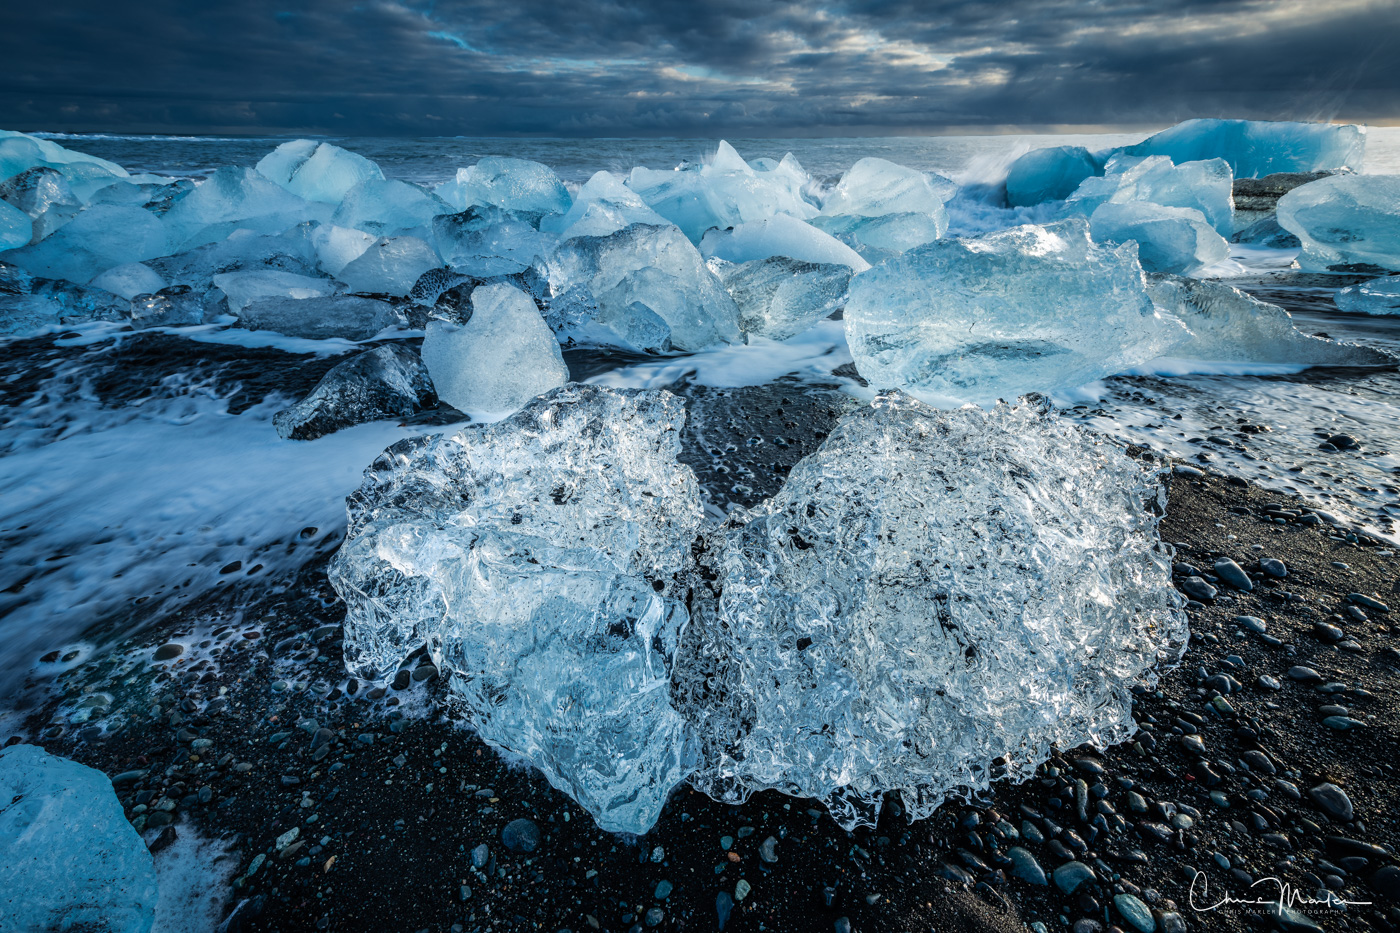 Iceland, Diamond Beach, Jökulsárlón, Iceberg, crystal, , photo